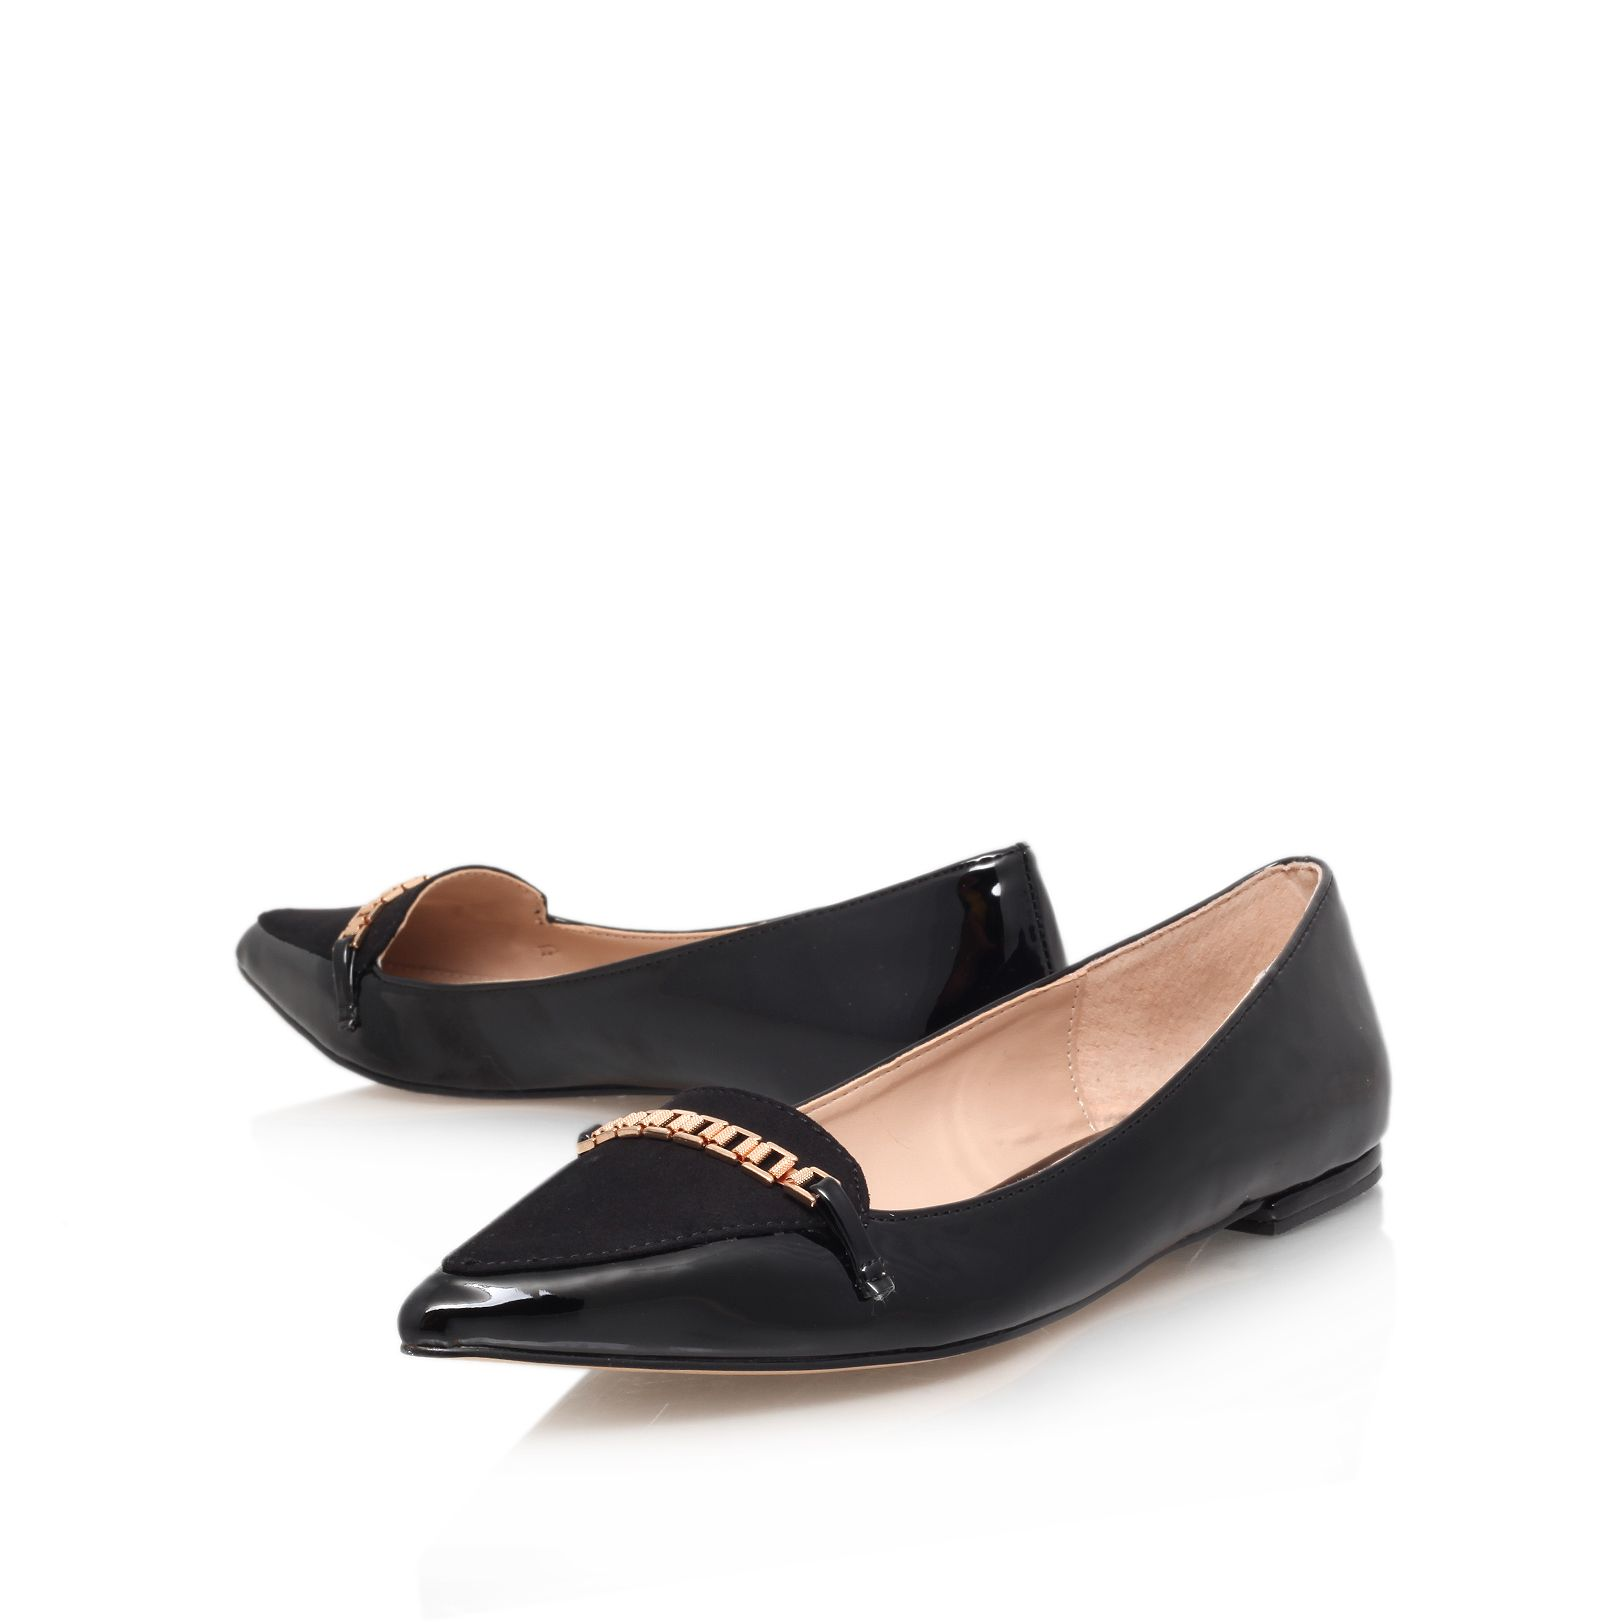 Lola flat court shoes